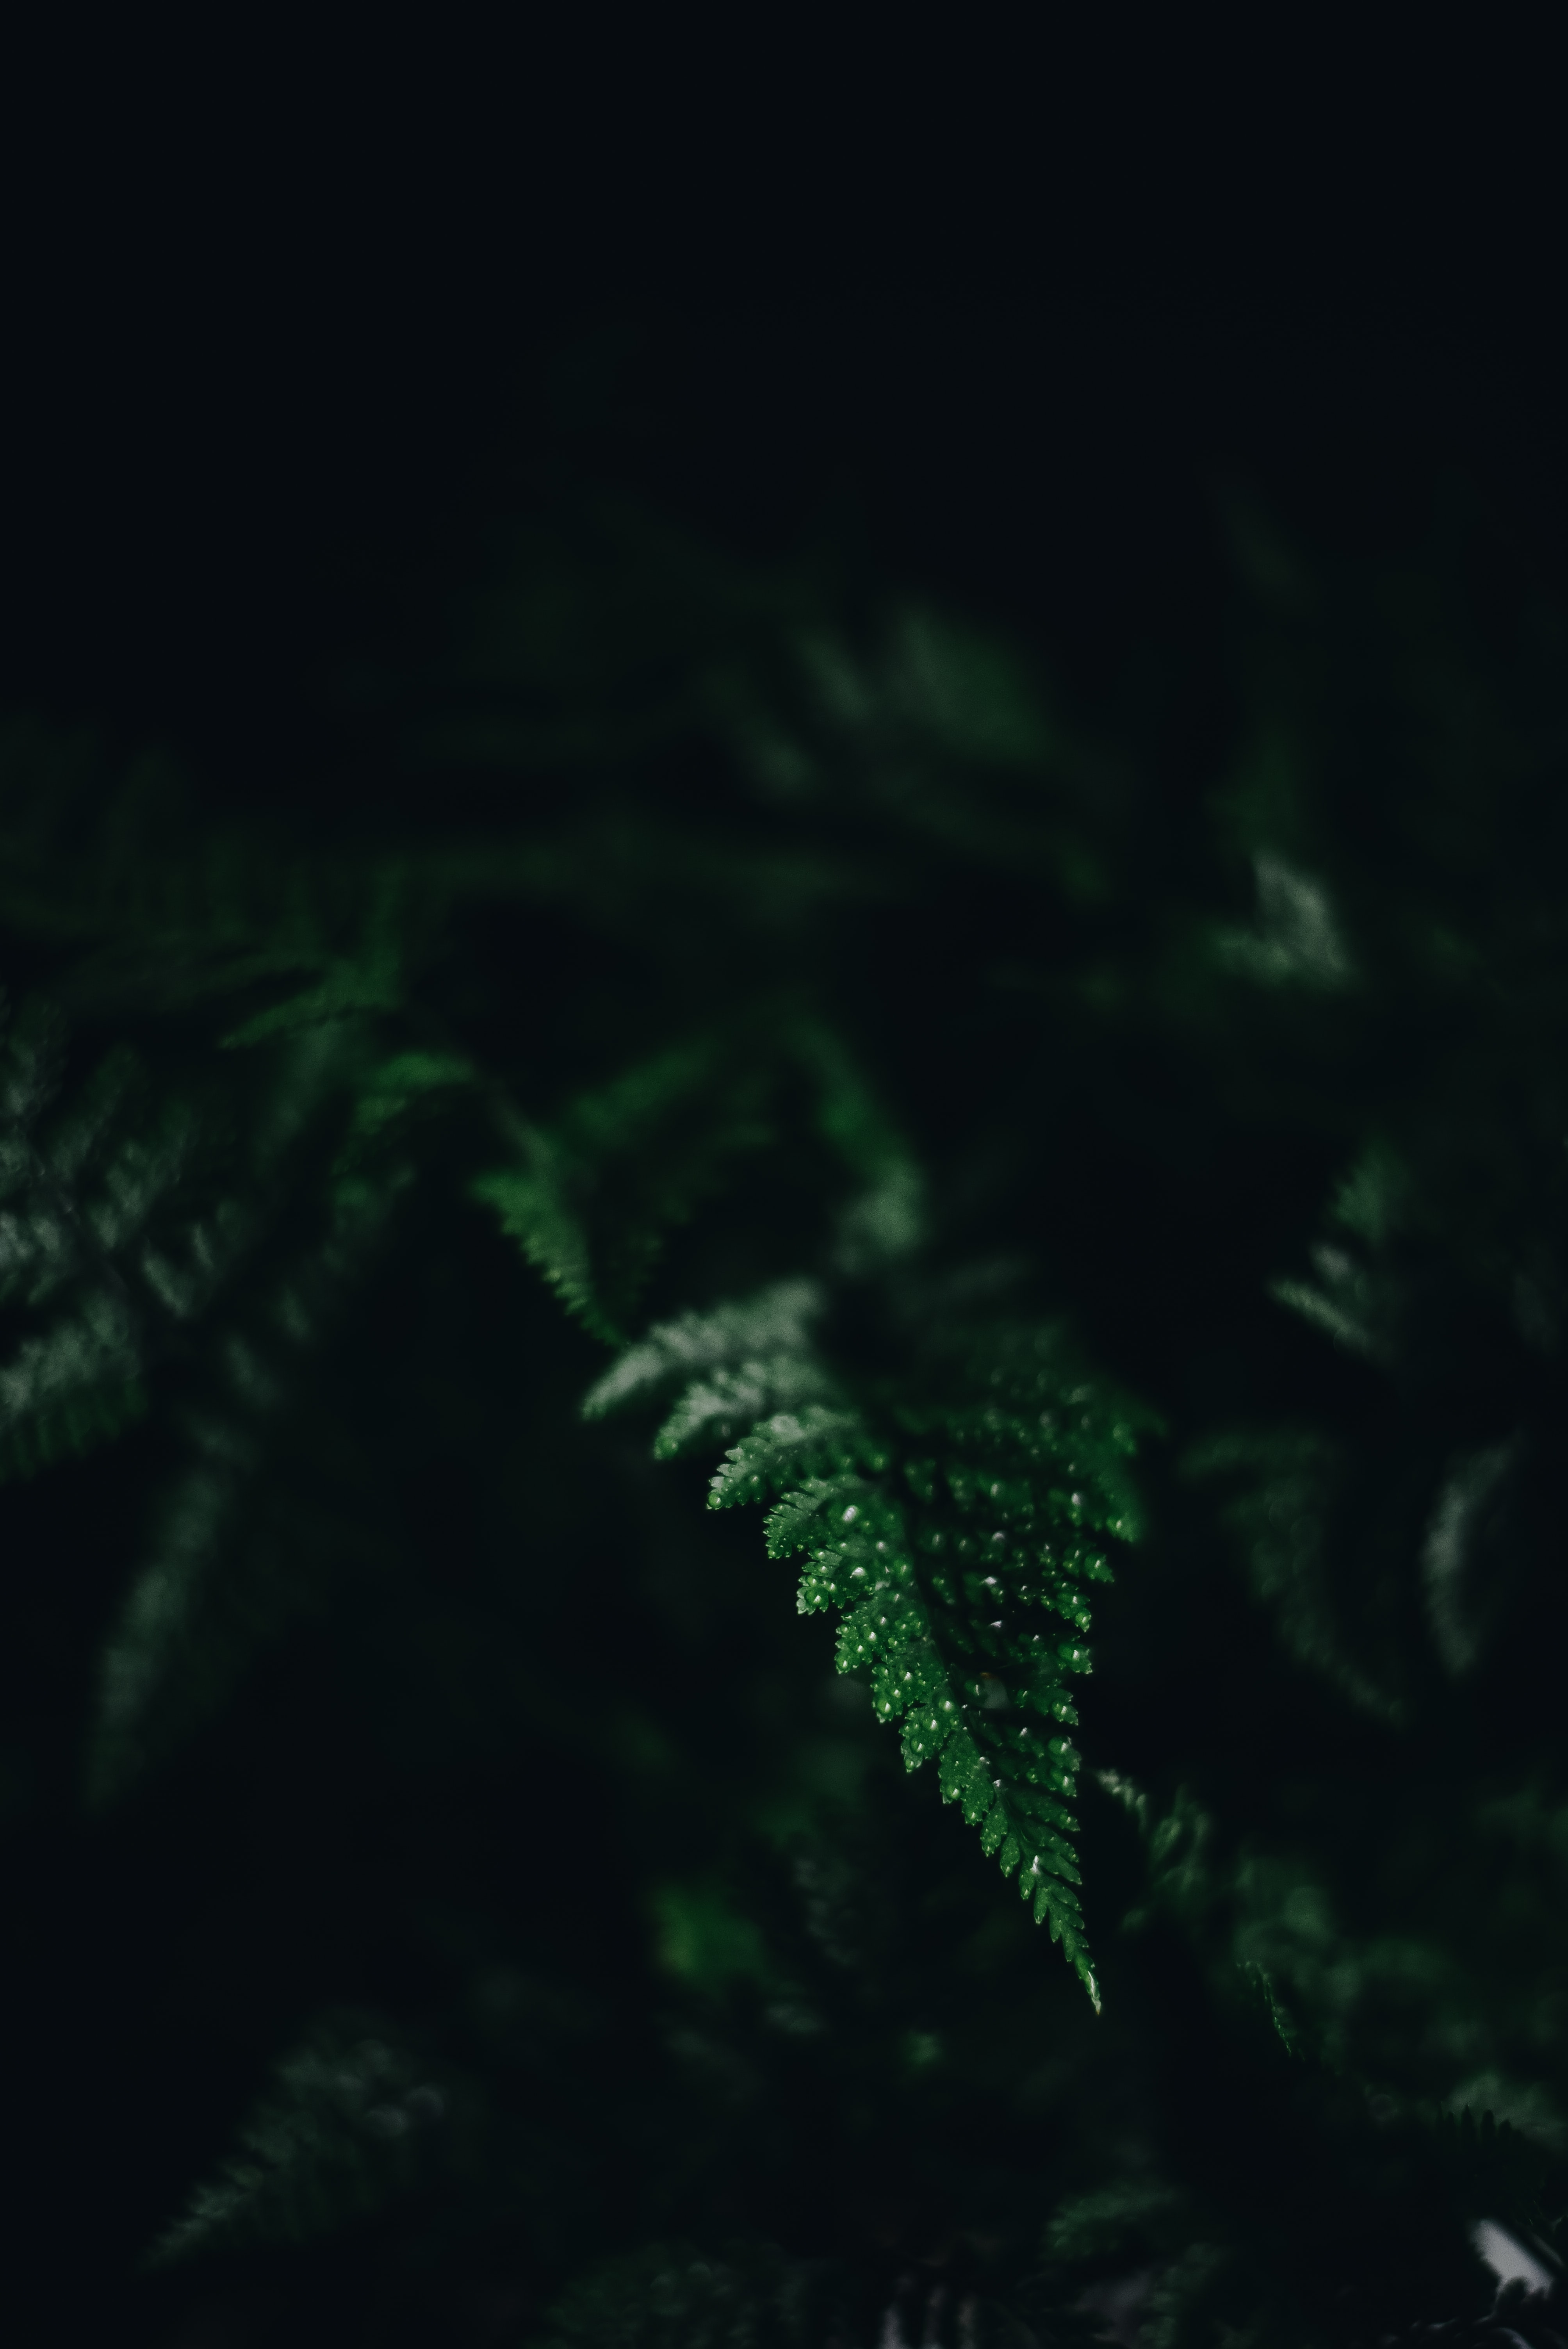 selective focus photography of fern leaf